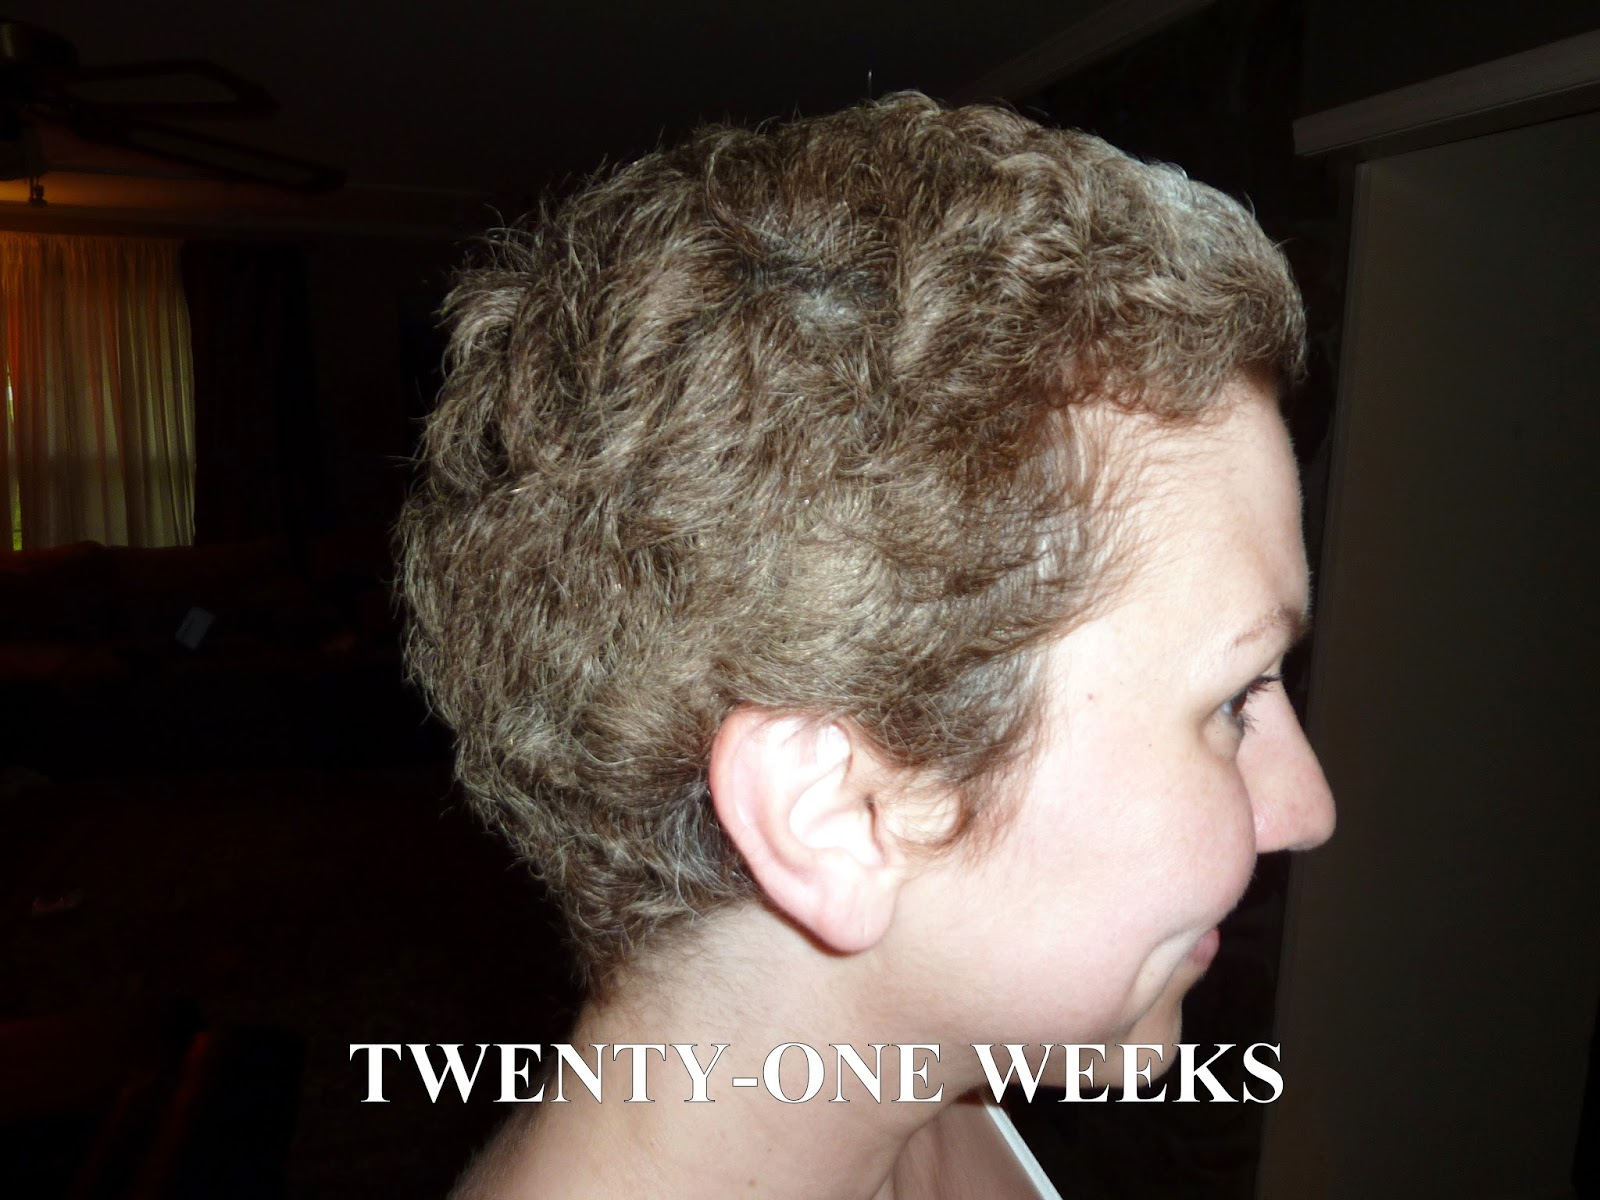 Pictures Of Stages Of Hair Growth After Chemo | 26 year